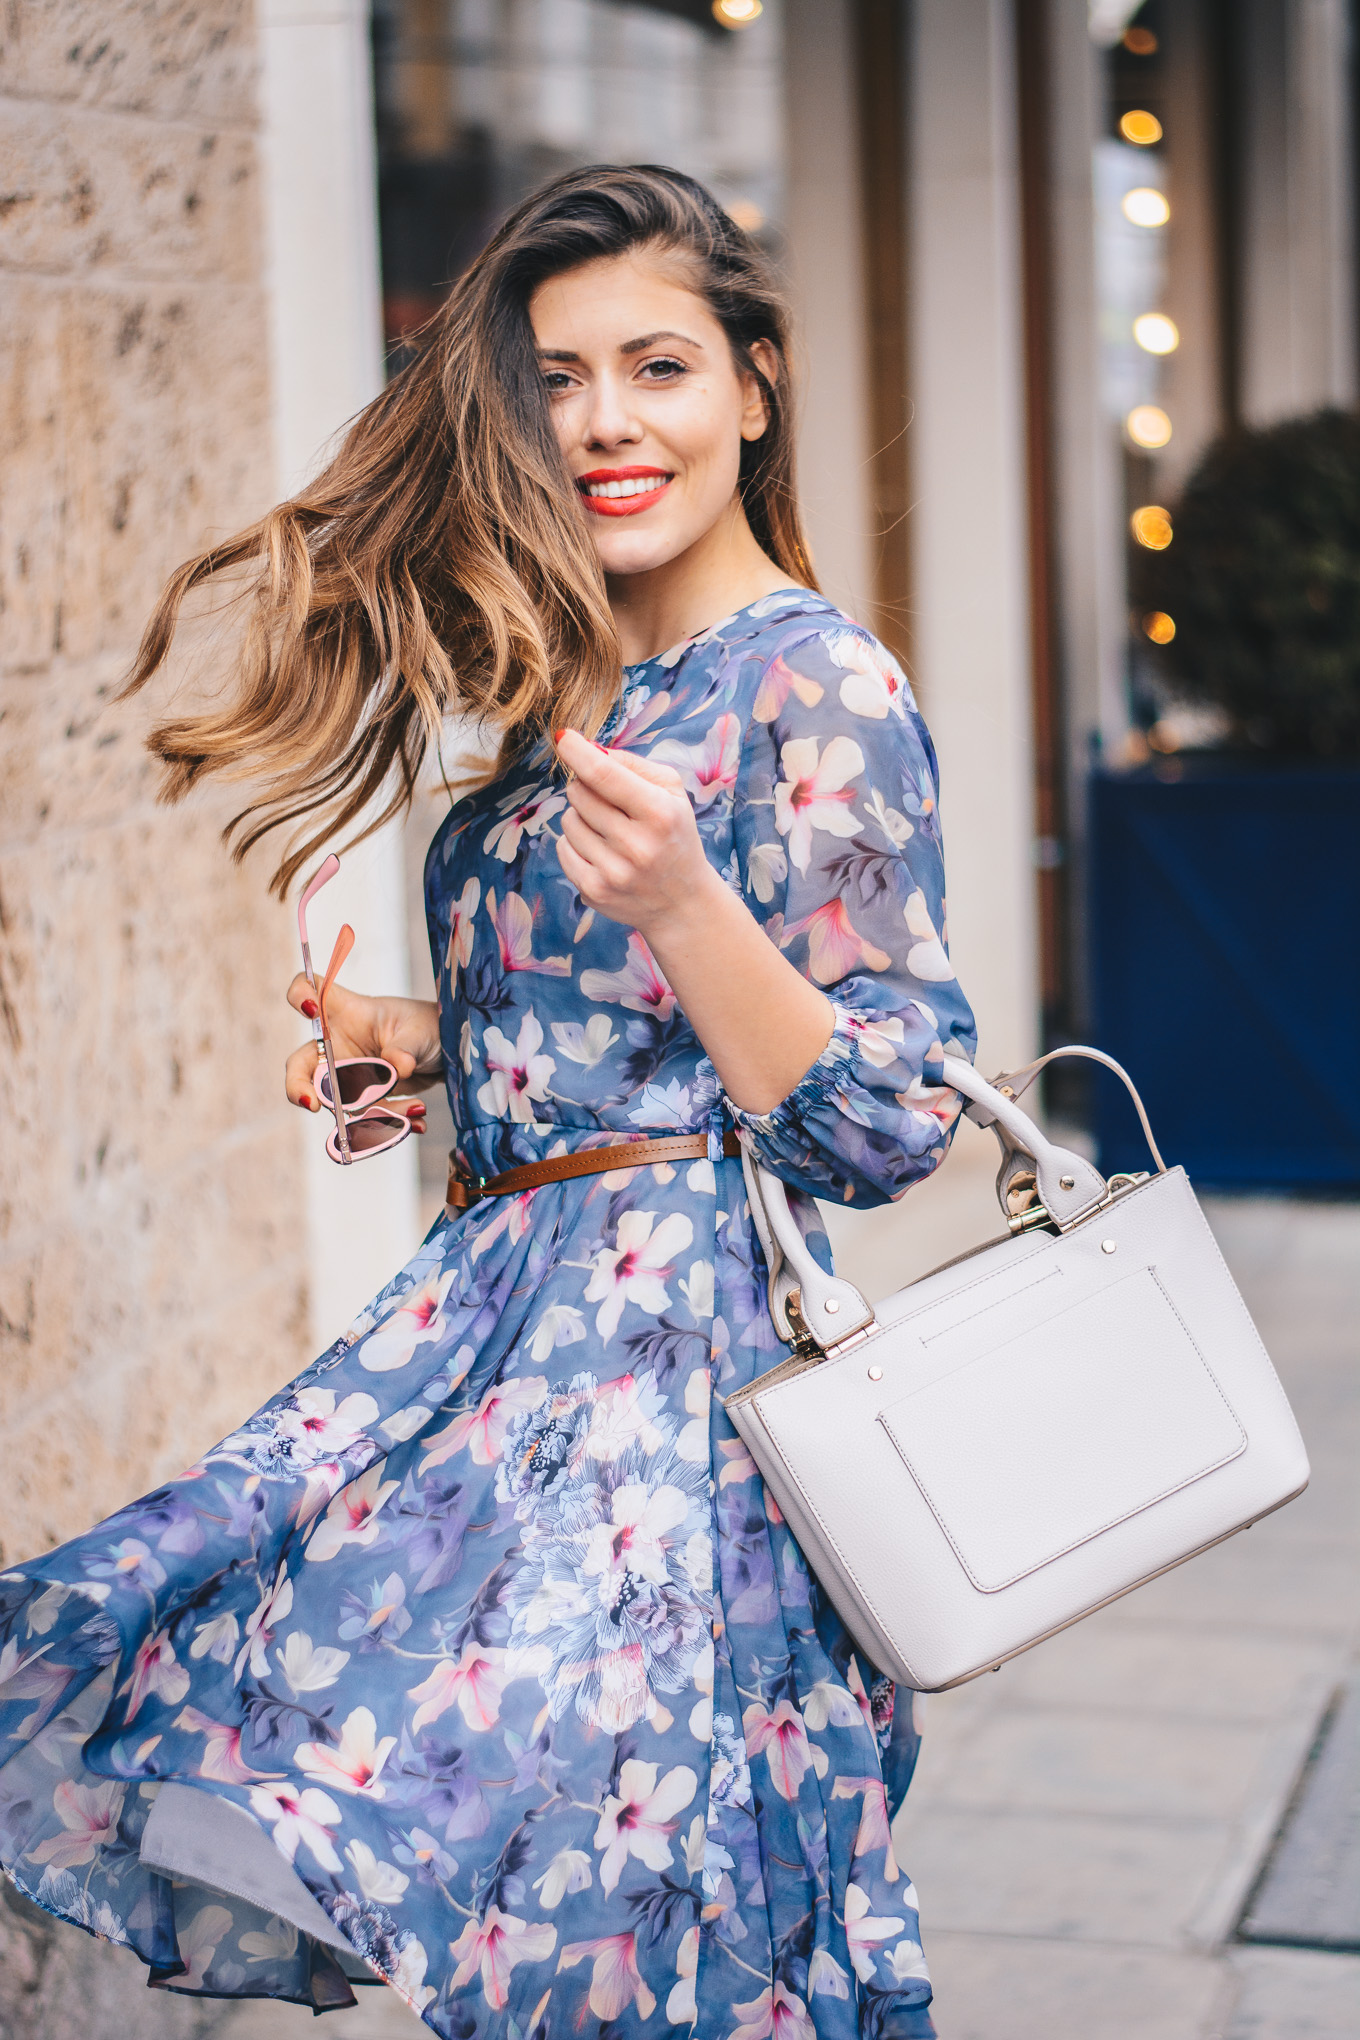 twirl the floral dress